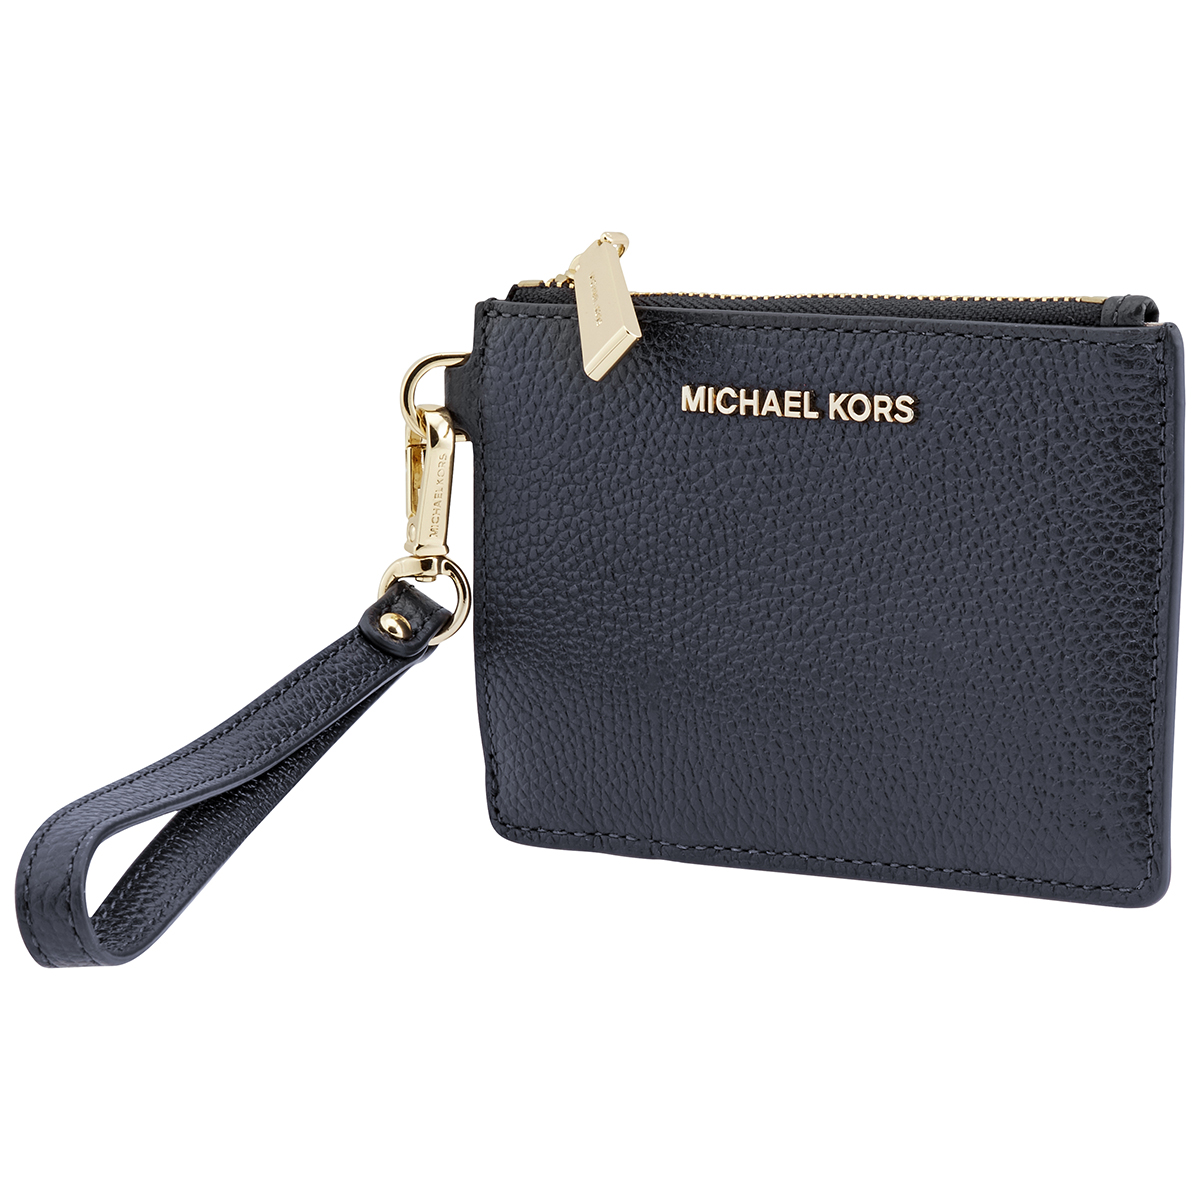 Michael Kors Mercer Pebbled Leather Coin Purse In Blue,gold Tone